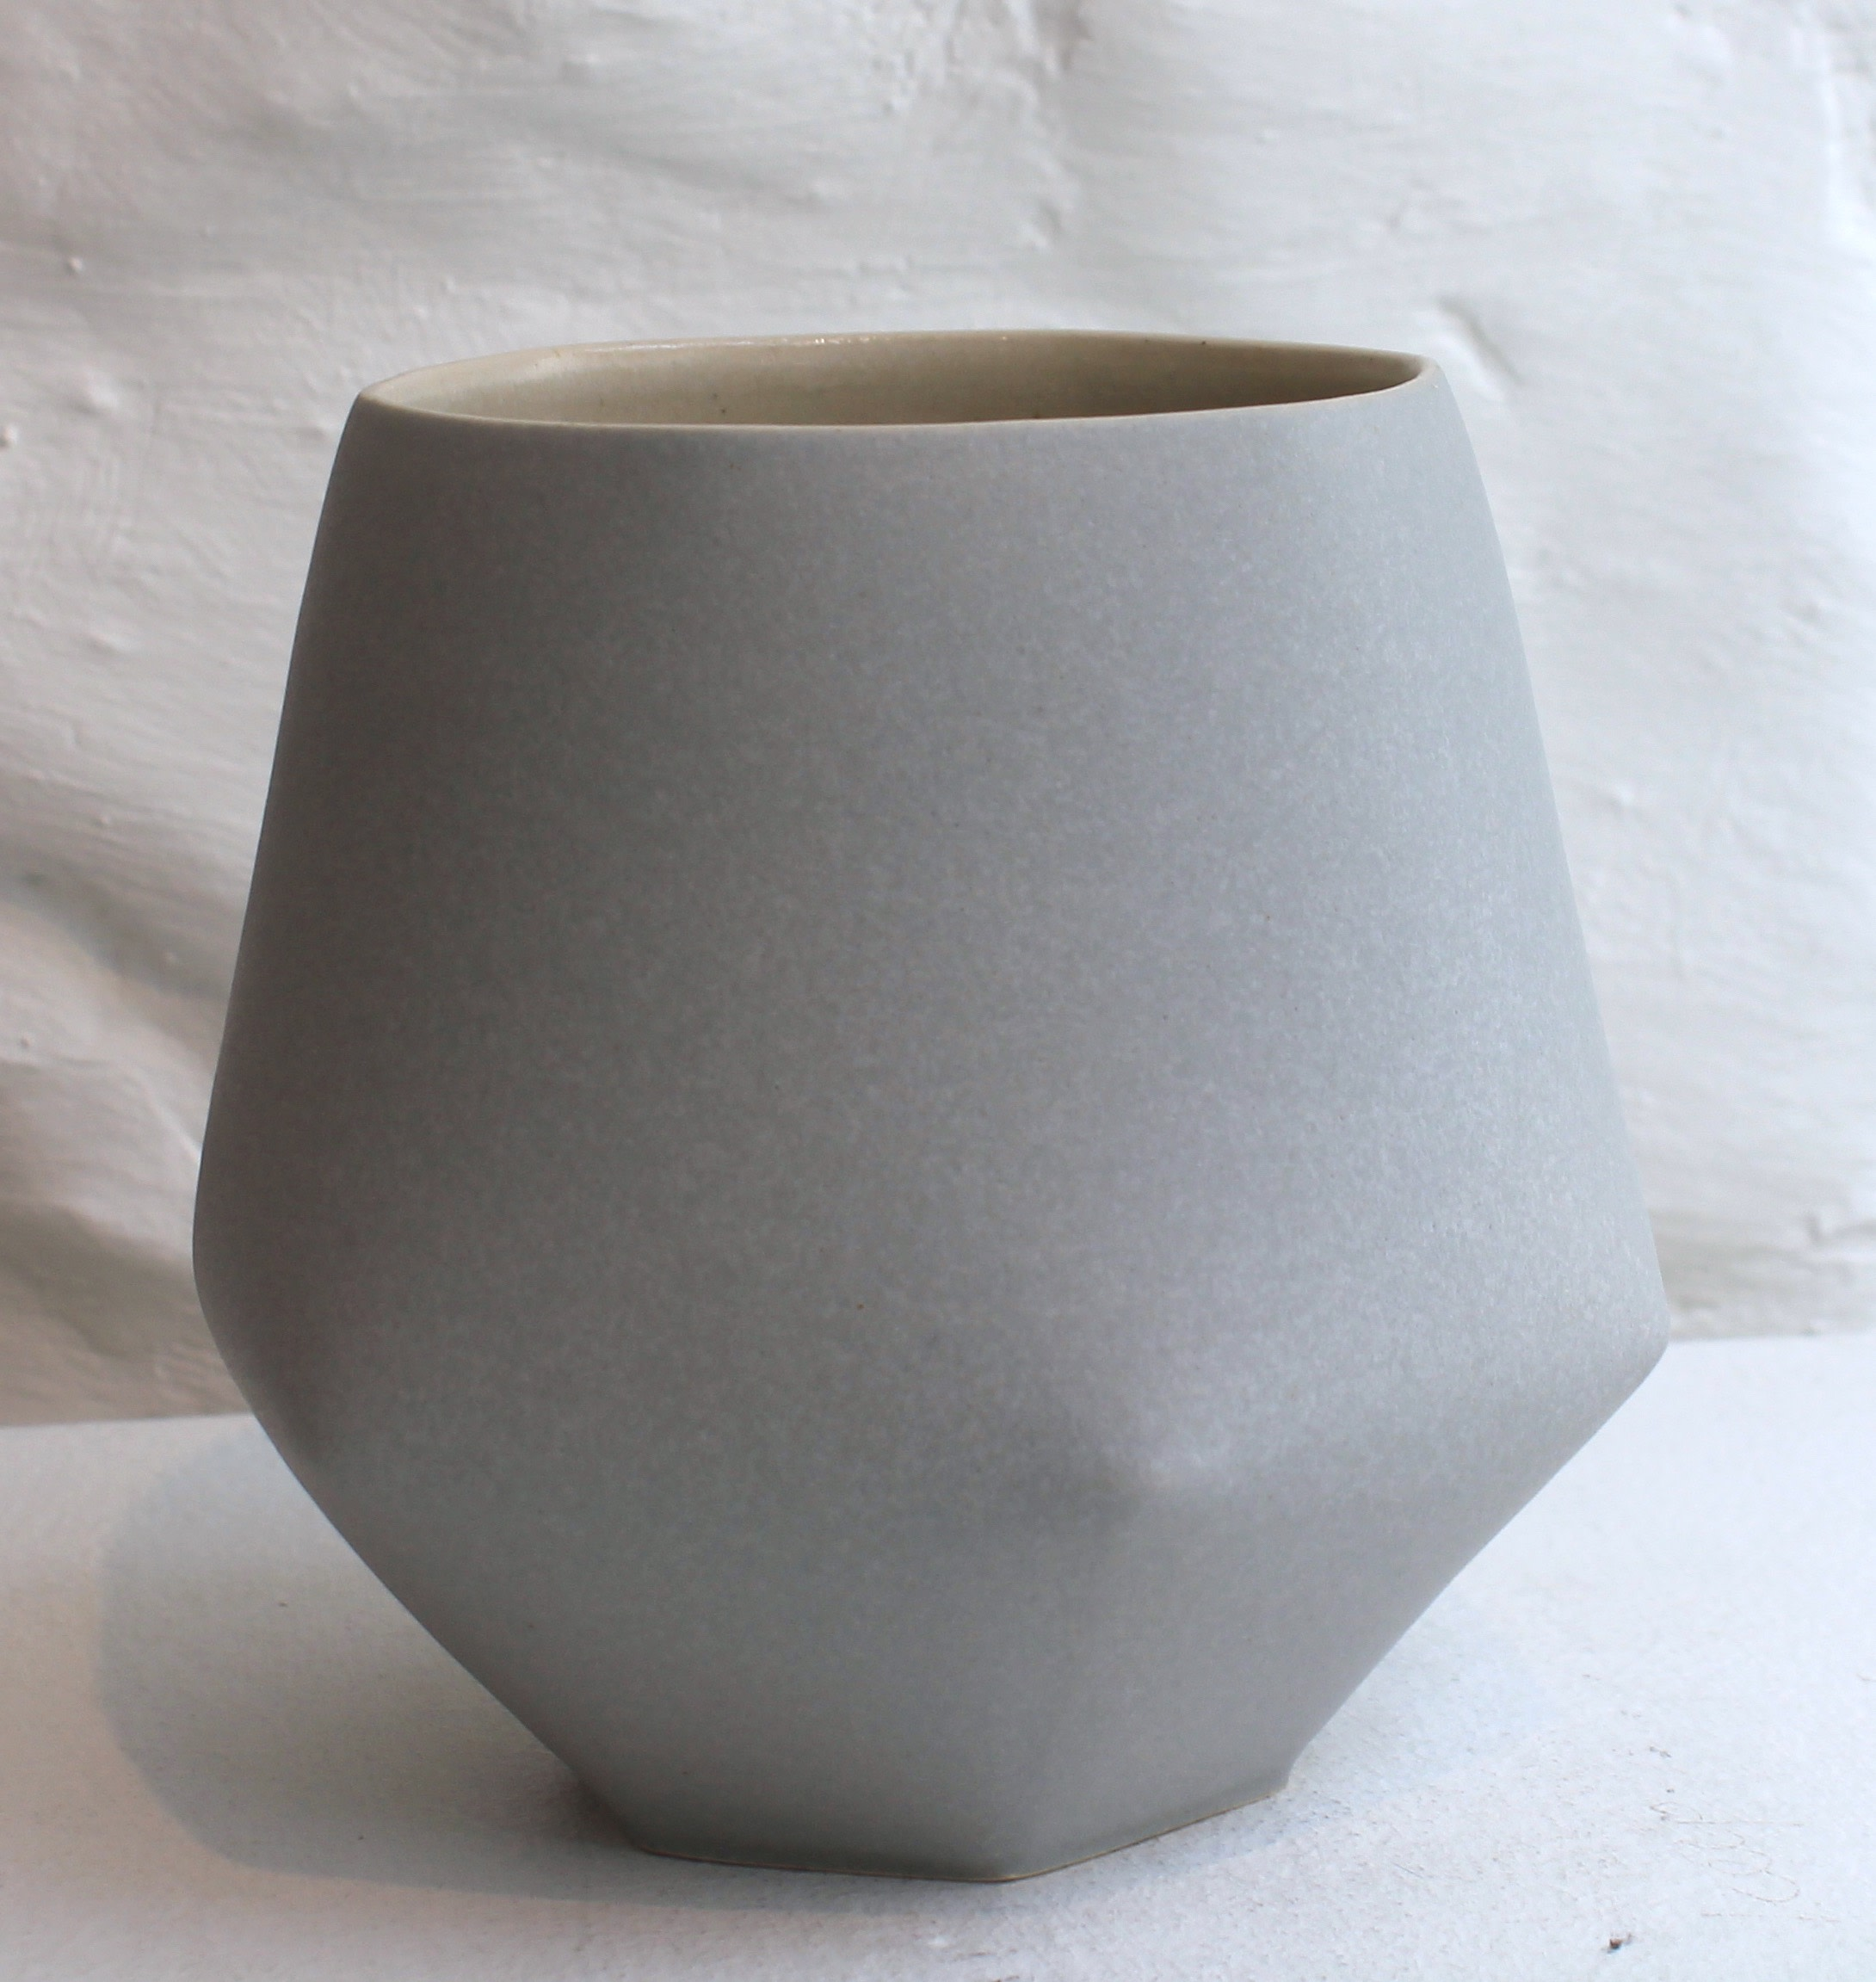 "<span class=""link fancybox-details-link""><a href=""/artists/33-sun-kim/works/5738-sun-kim-small-vase-2018/"">View Detail Page</a></span><div class=""artist""><strong>Sun Kim</strong></div> <div class=""title""><em>Small Vase</em>, 2018</div> <div class=""signed_and_dated"">stamped by the artist</div> <div class=""medium"">porcelain</div> <div class=""dimensions"">12 x 13 x 9 cm<br /> 4 3/4 x 5 1/8 x 3 1/2 inches</div><div class=""copyright_line"">OwnArt: £ 20 x 10 Months, 0% APR</div>"